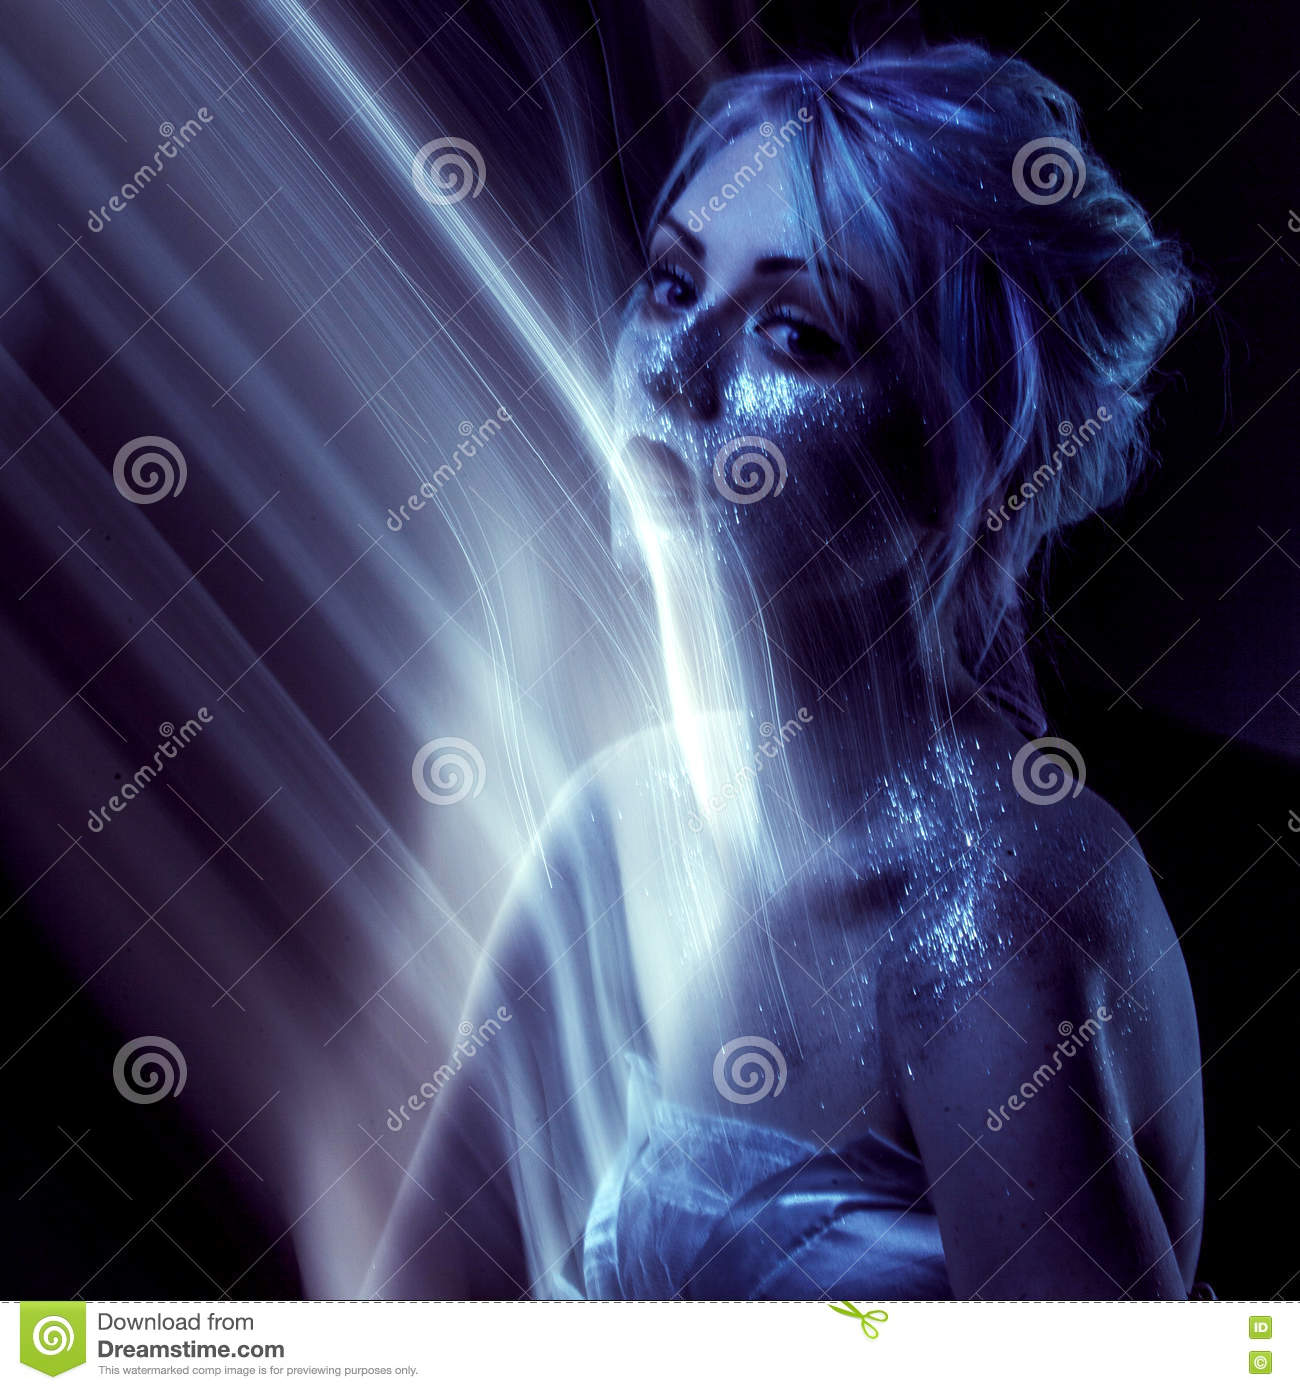 Ghostly Woman Soul Portrait Of A Movement Effect Creative Body Art On Theme Space And Stars Stock Photo Image Of Eyes Ethereal 75379296